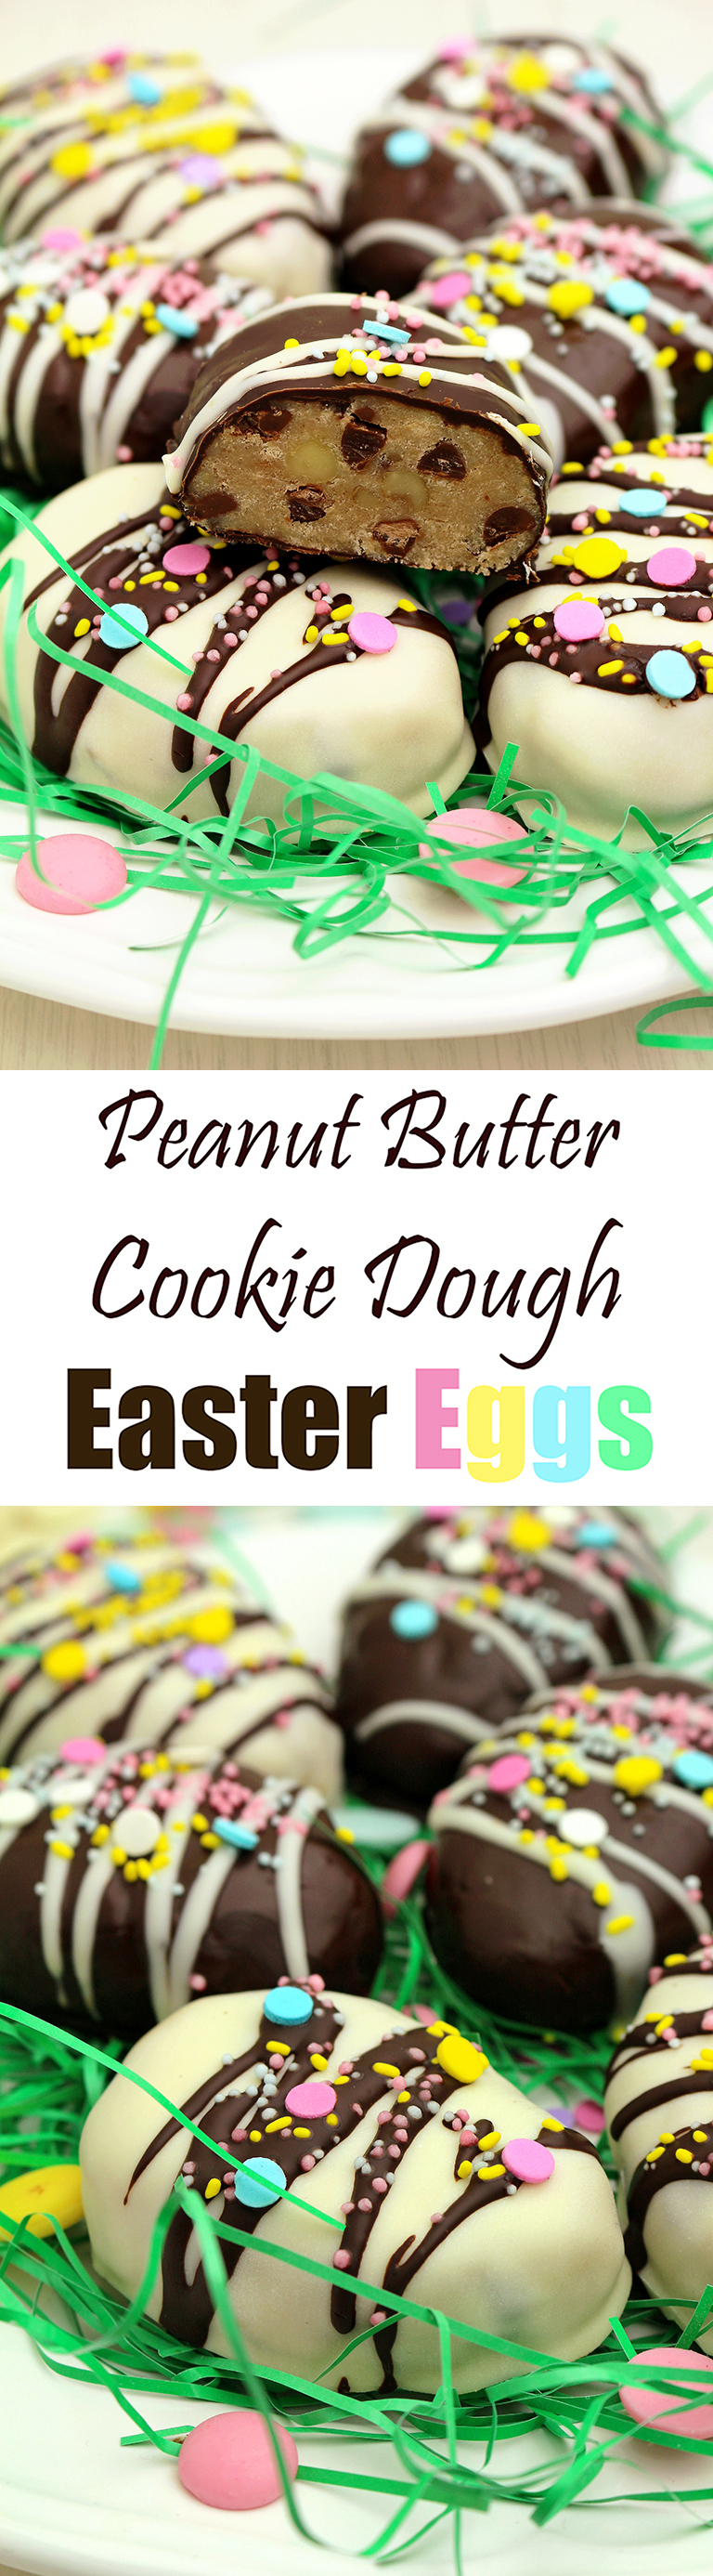 Peanut Butter Cookie Dough Easter Eggs